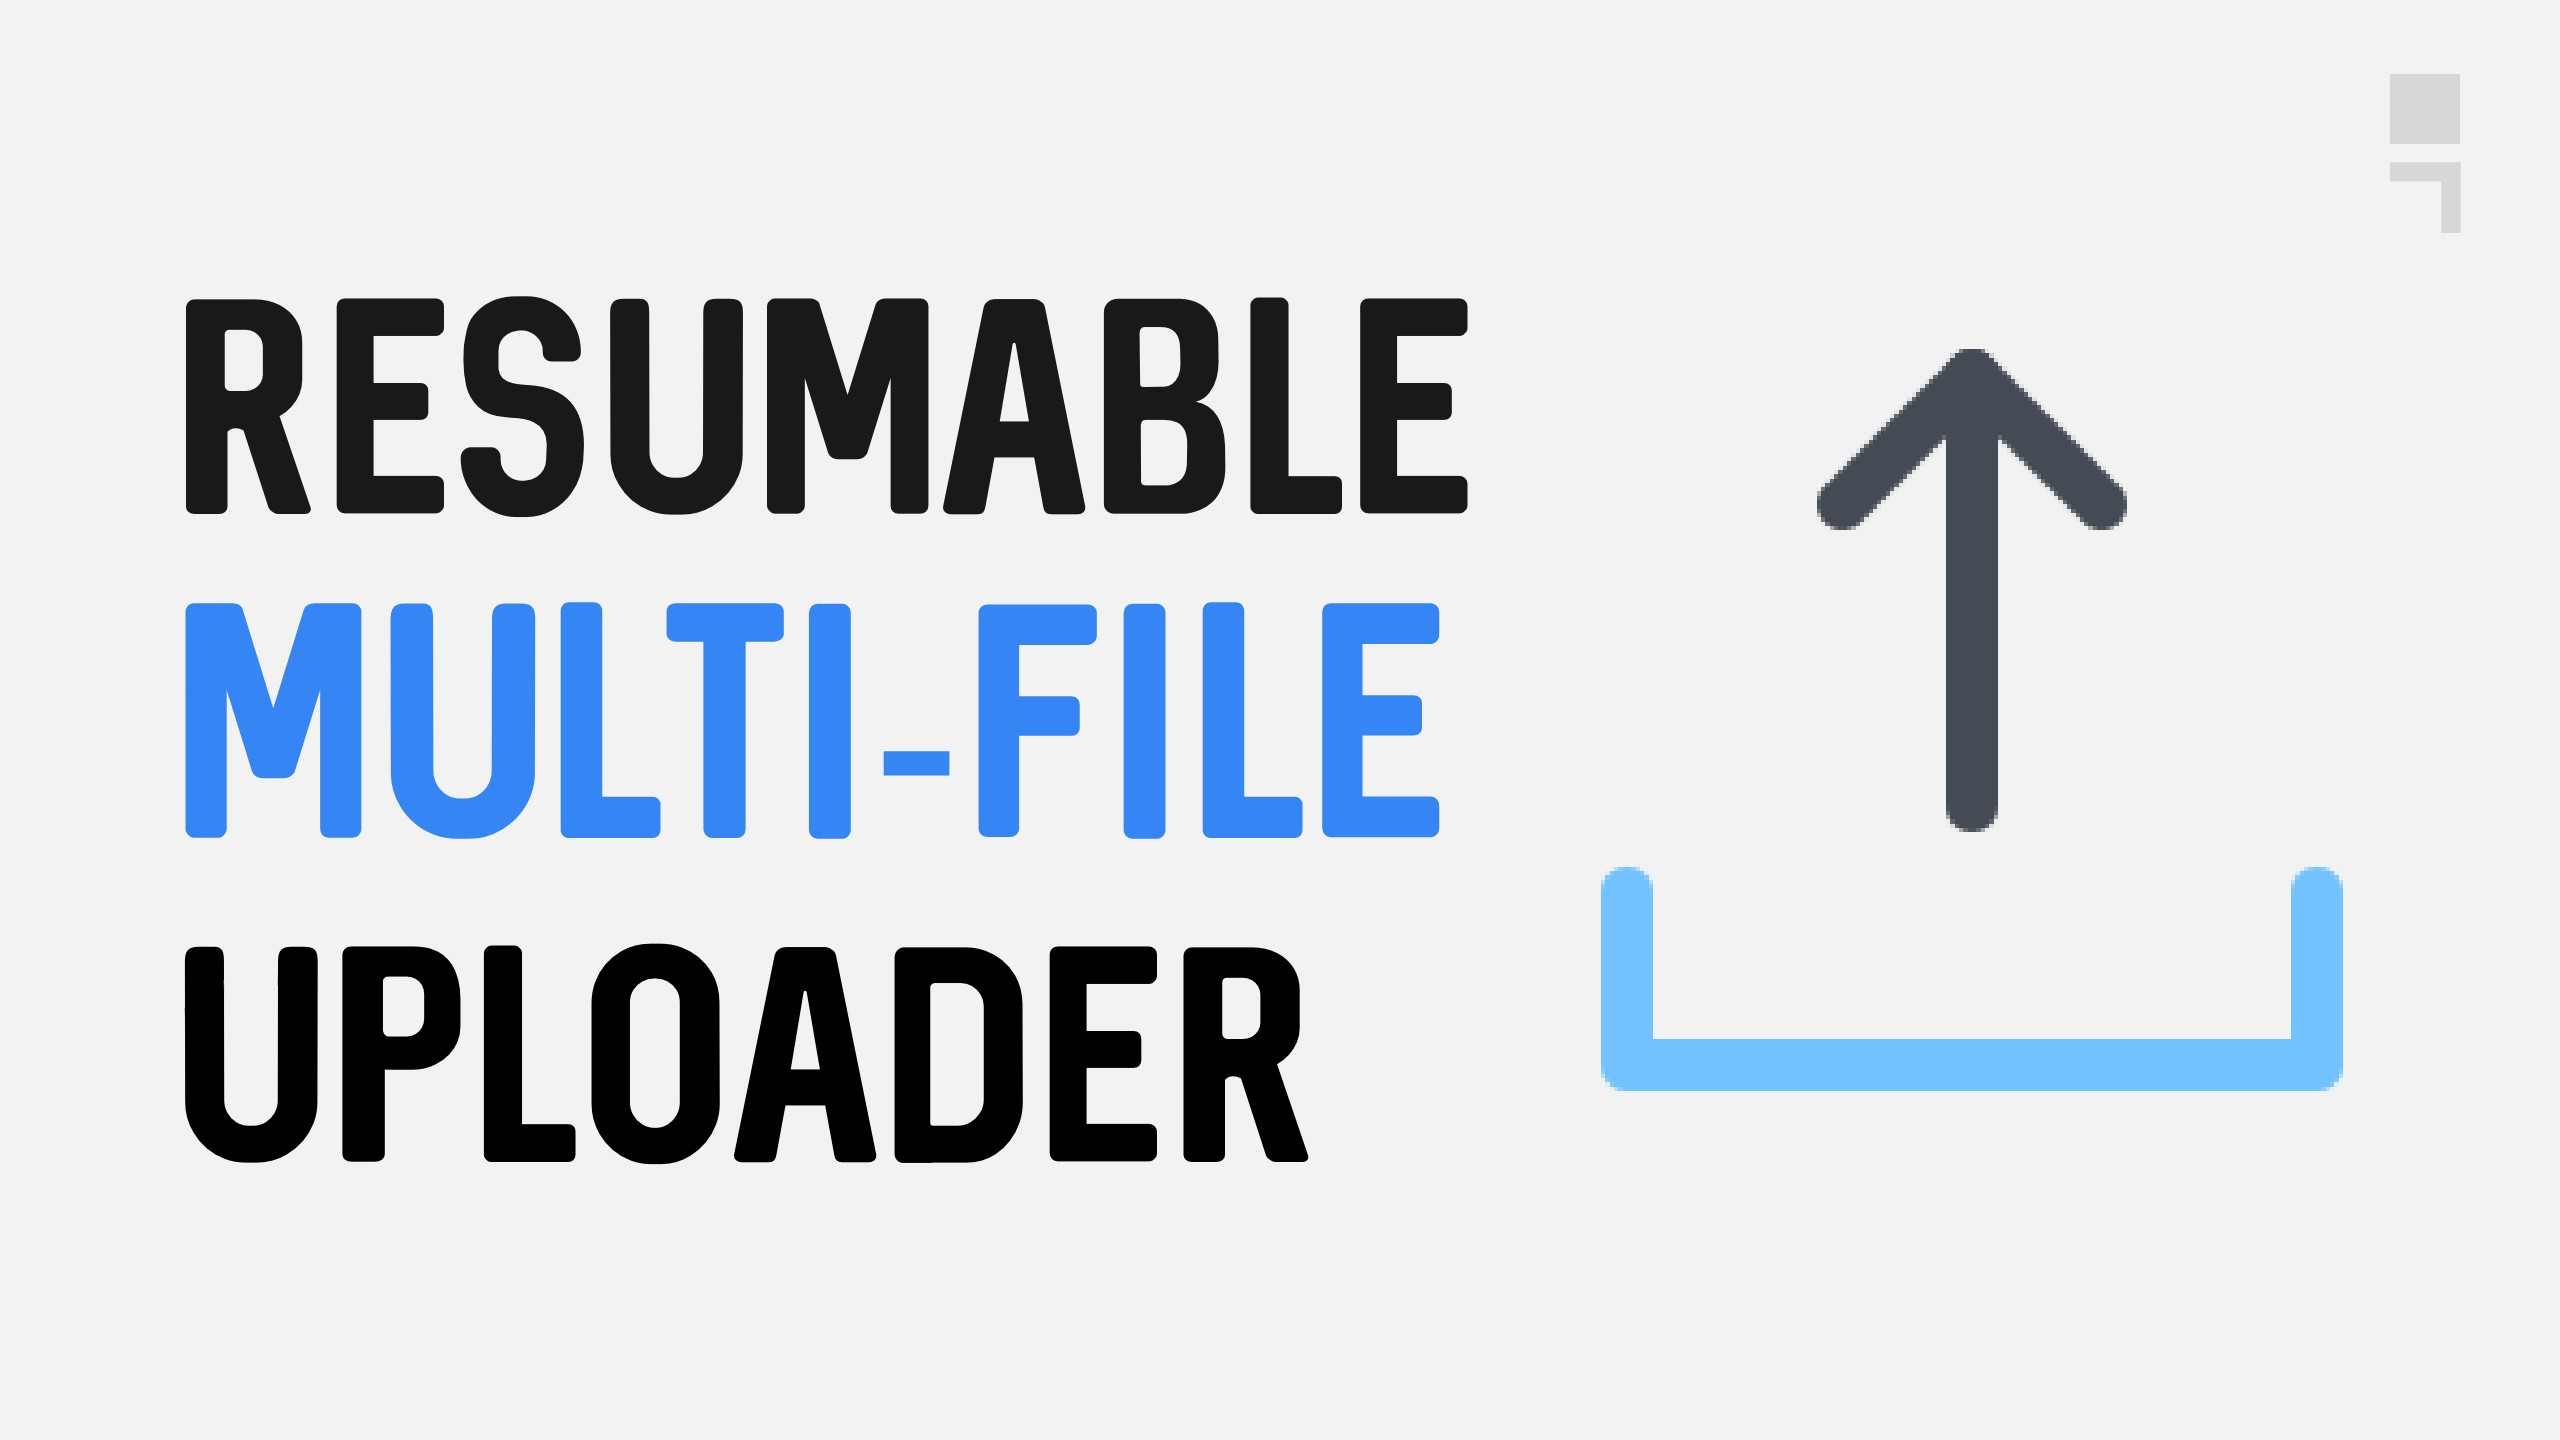 How to Create a Resumable MultiFile Uploader with NodeJs